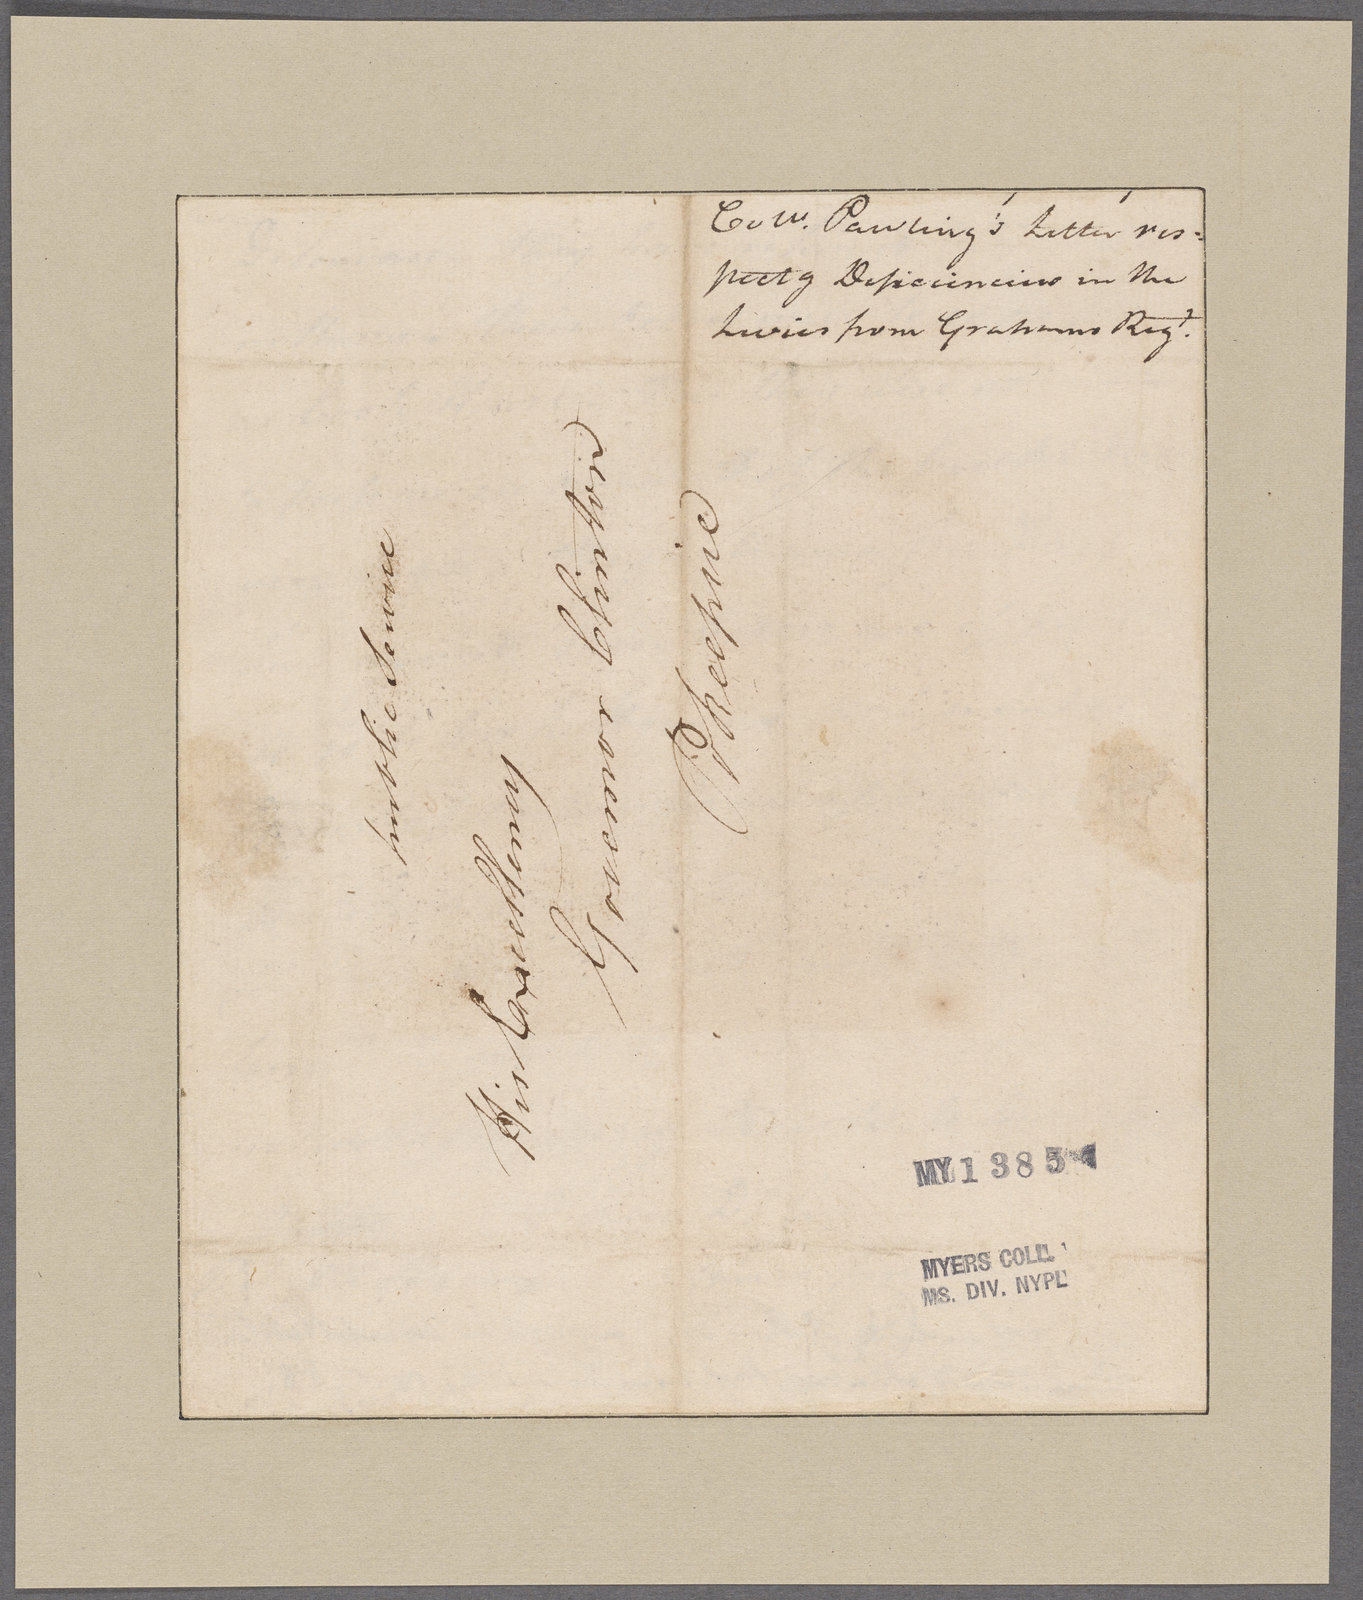 Pawling, Henry. Marbletown. To Governor Clinton